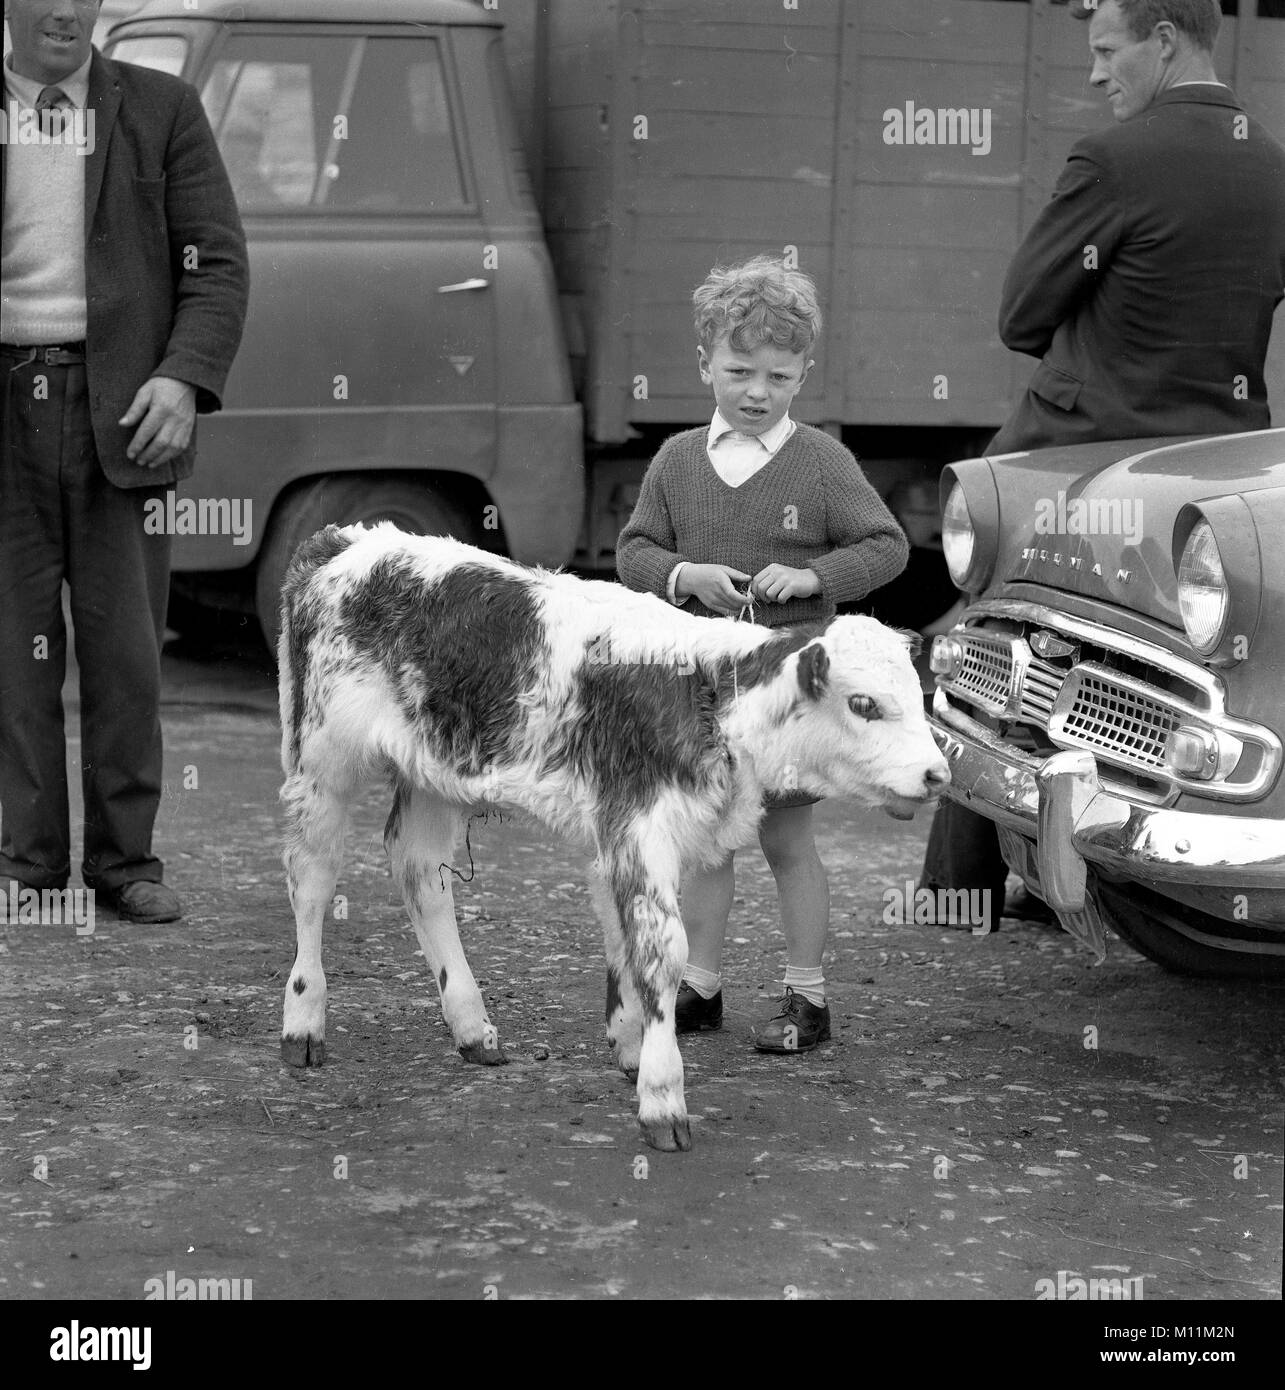 Young boy child with a calf at Galway Market in Ireland 1960 - Stock Image